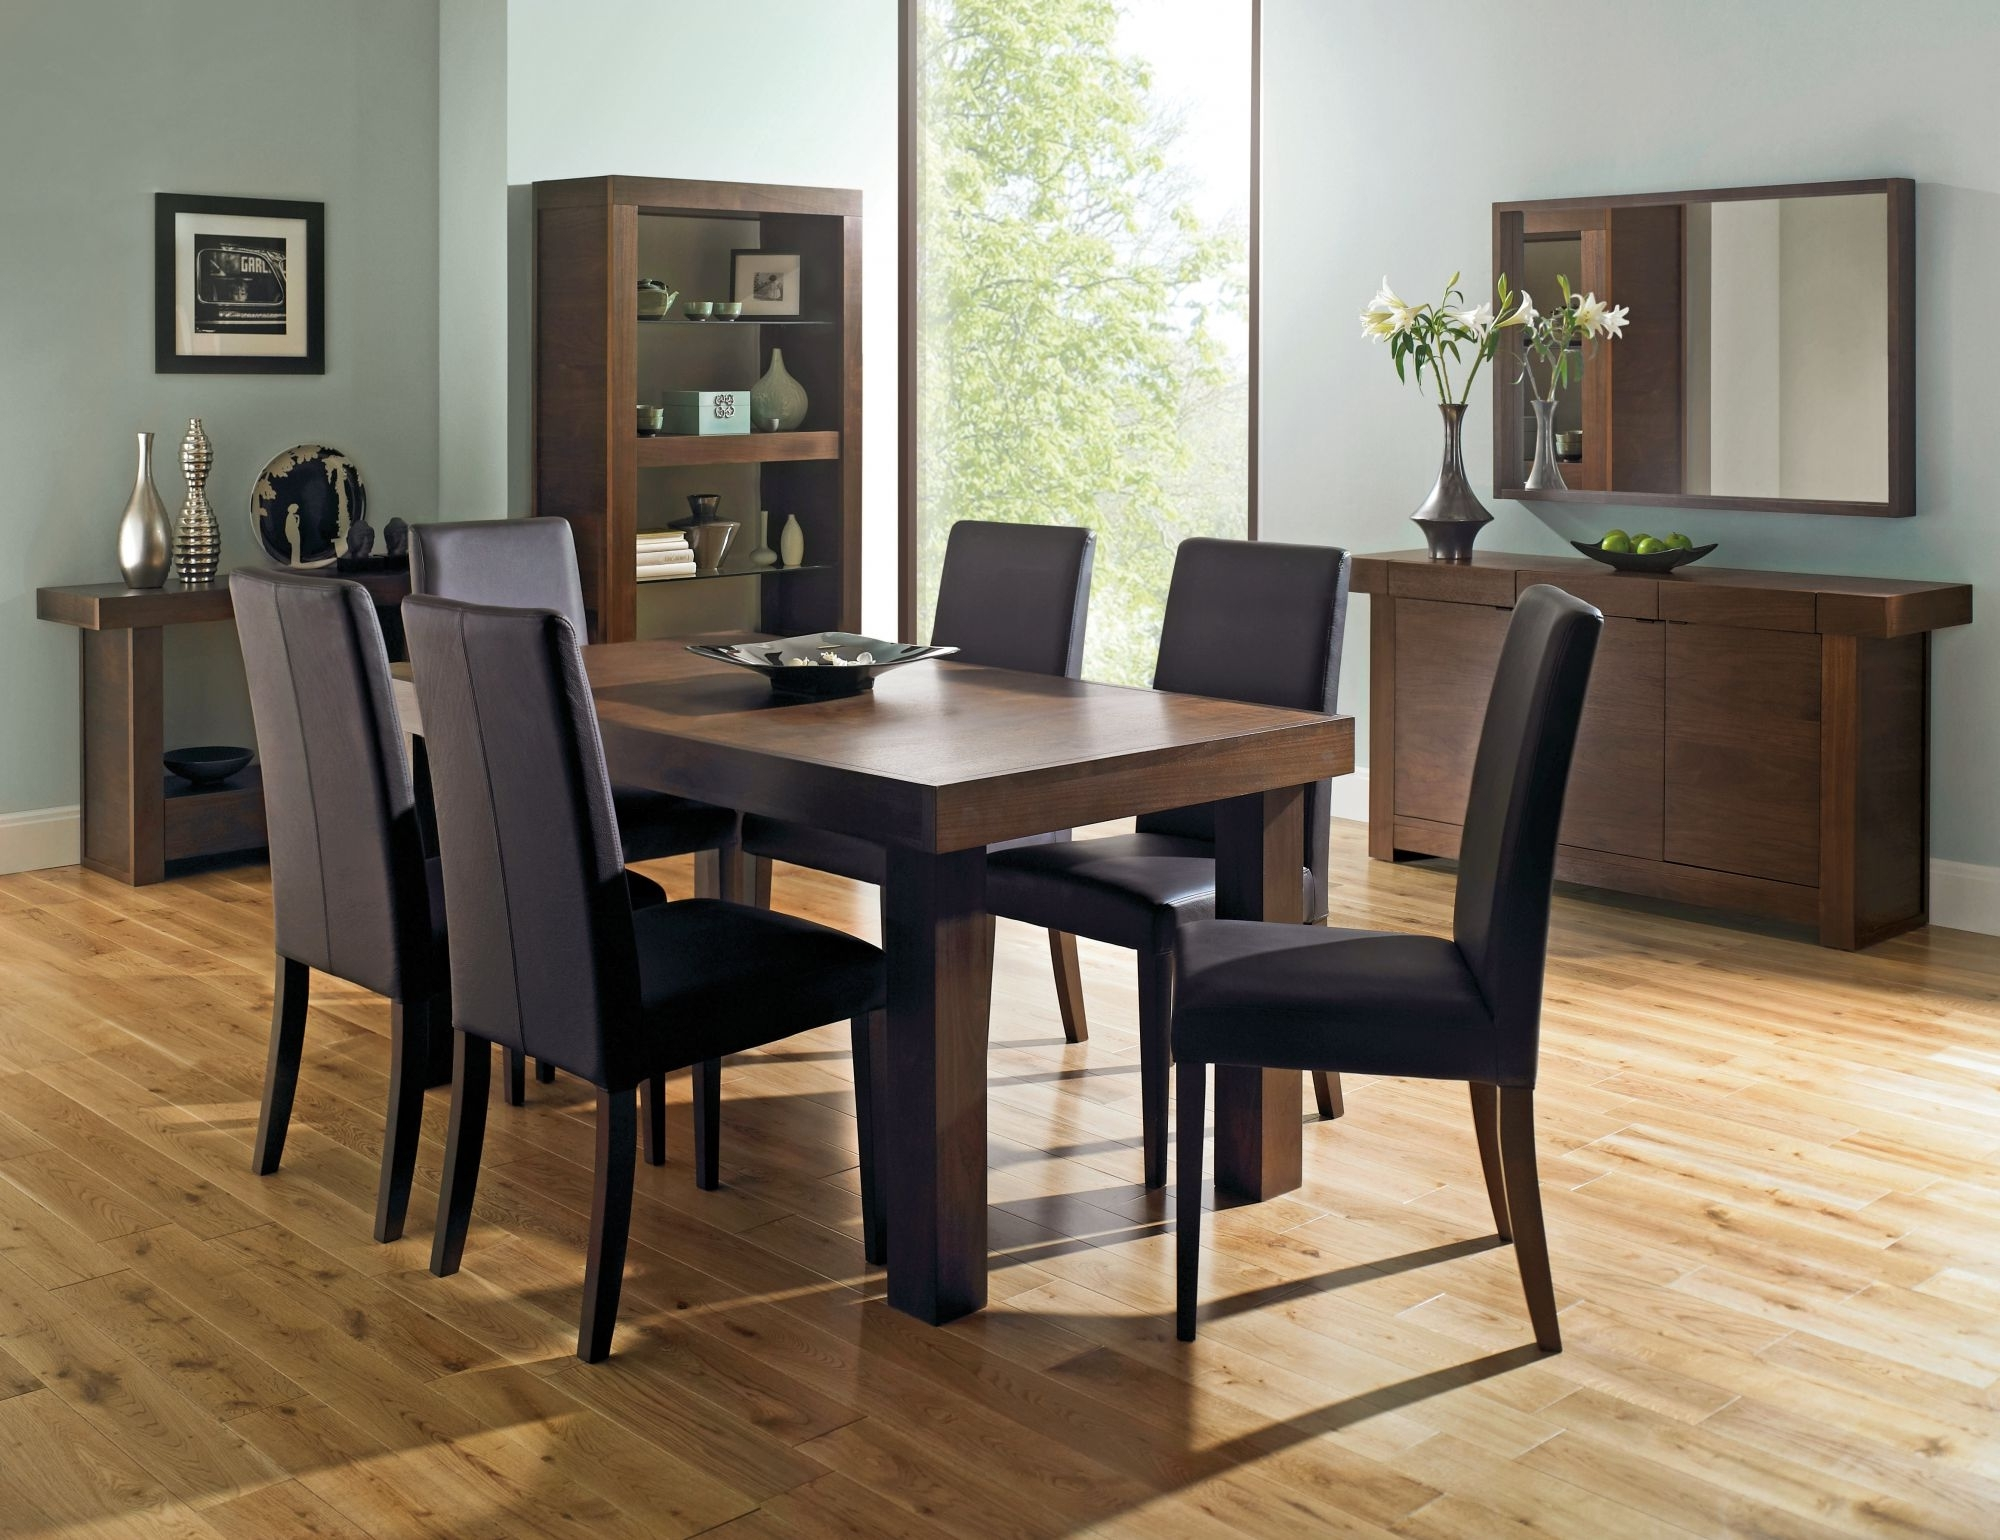 Preferred Round 6 Person Dining Tables Throughout Akita 6 Seater Panel Dining Table – Large (View 19 of 25)